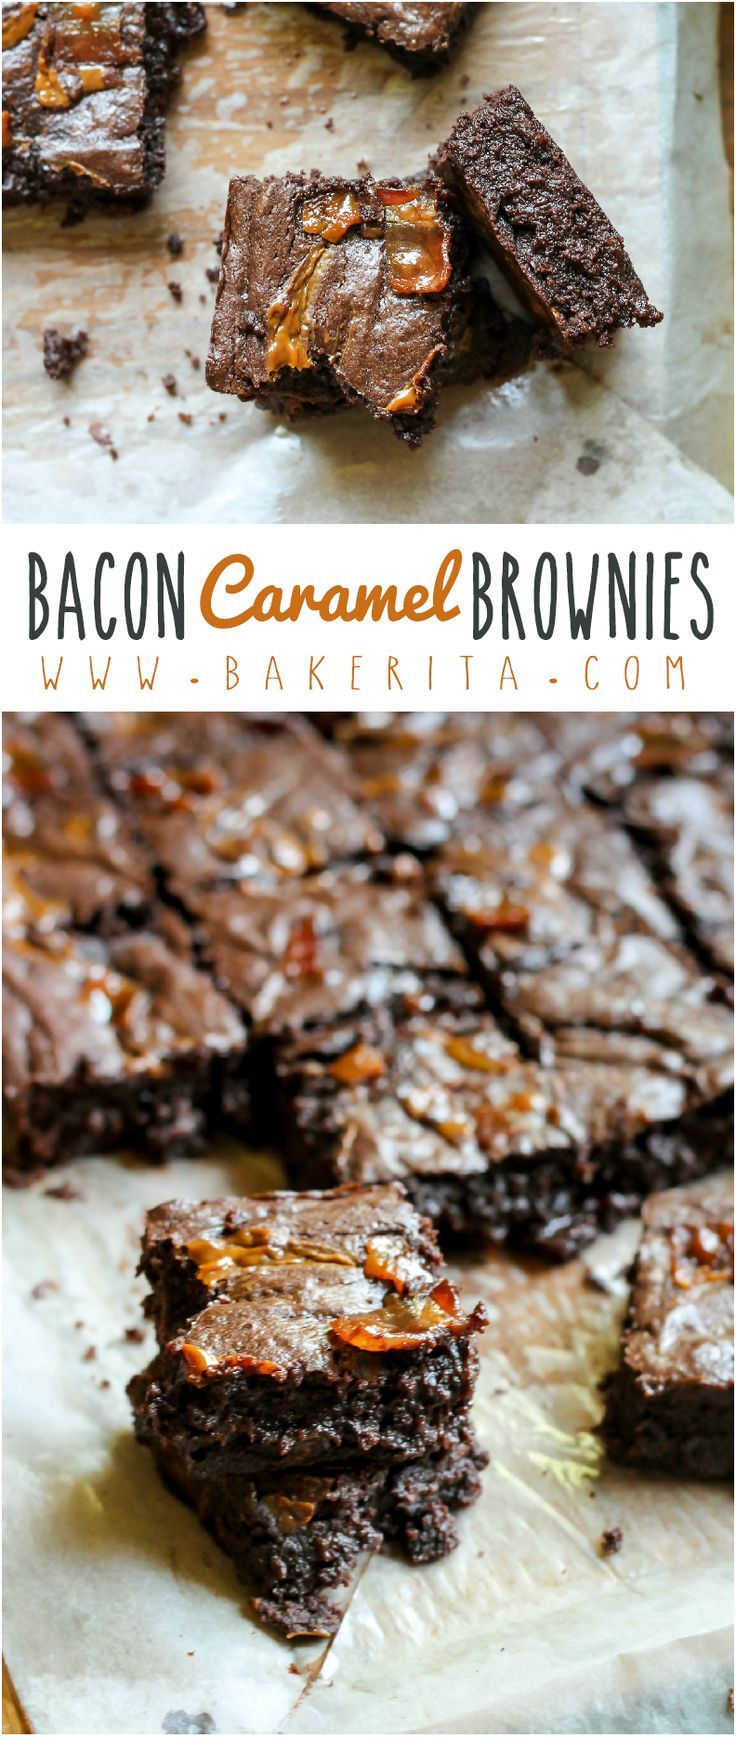 These Bacon Caramel Brownies are swirled with caramel & sprinkled with brown sugar bacon! If you've never tried bacon in brownies, you need to try these!